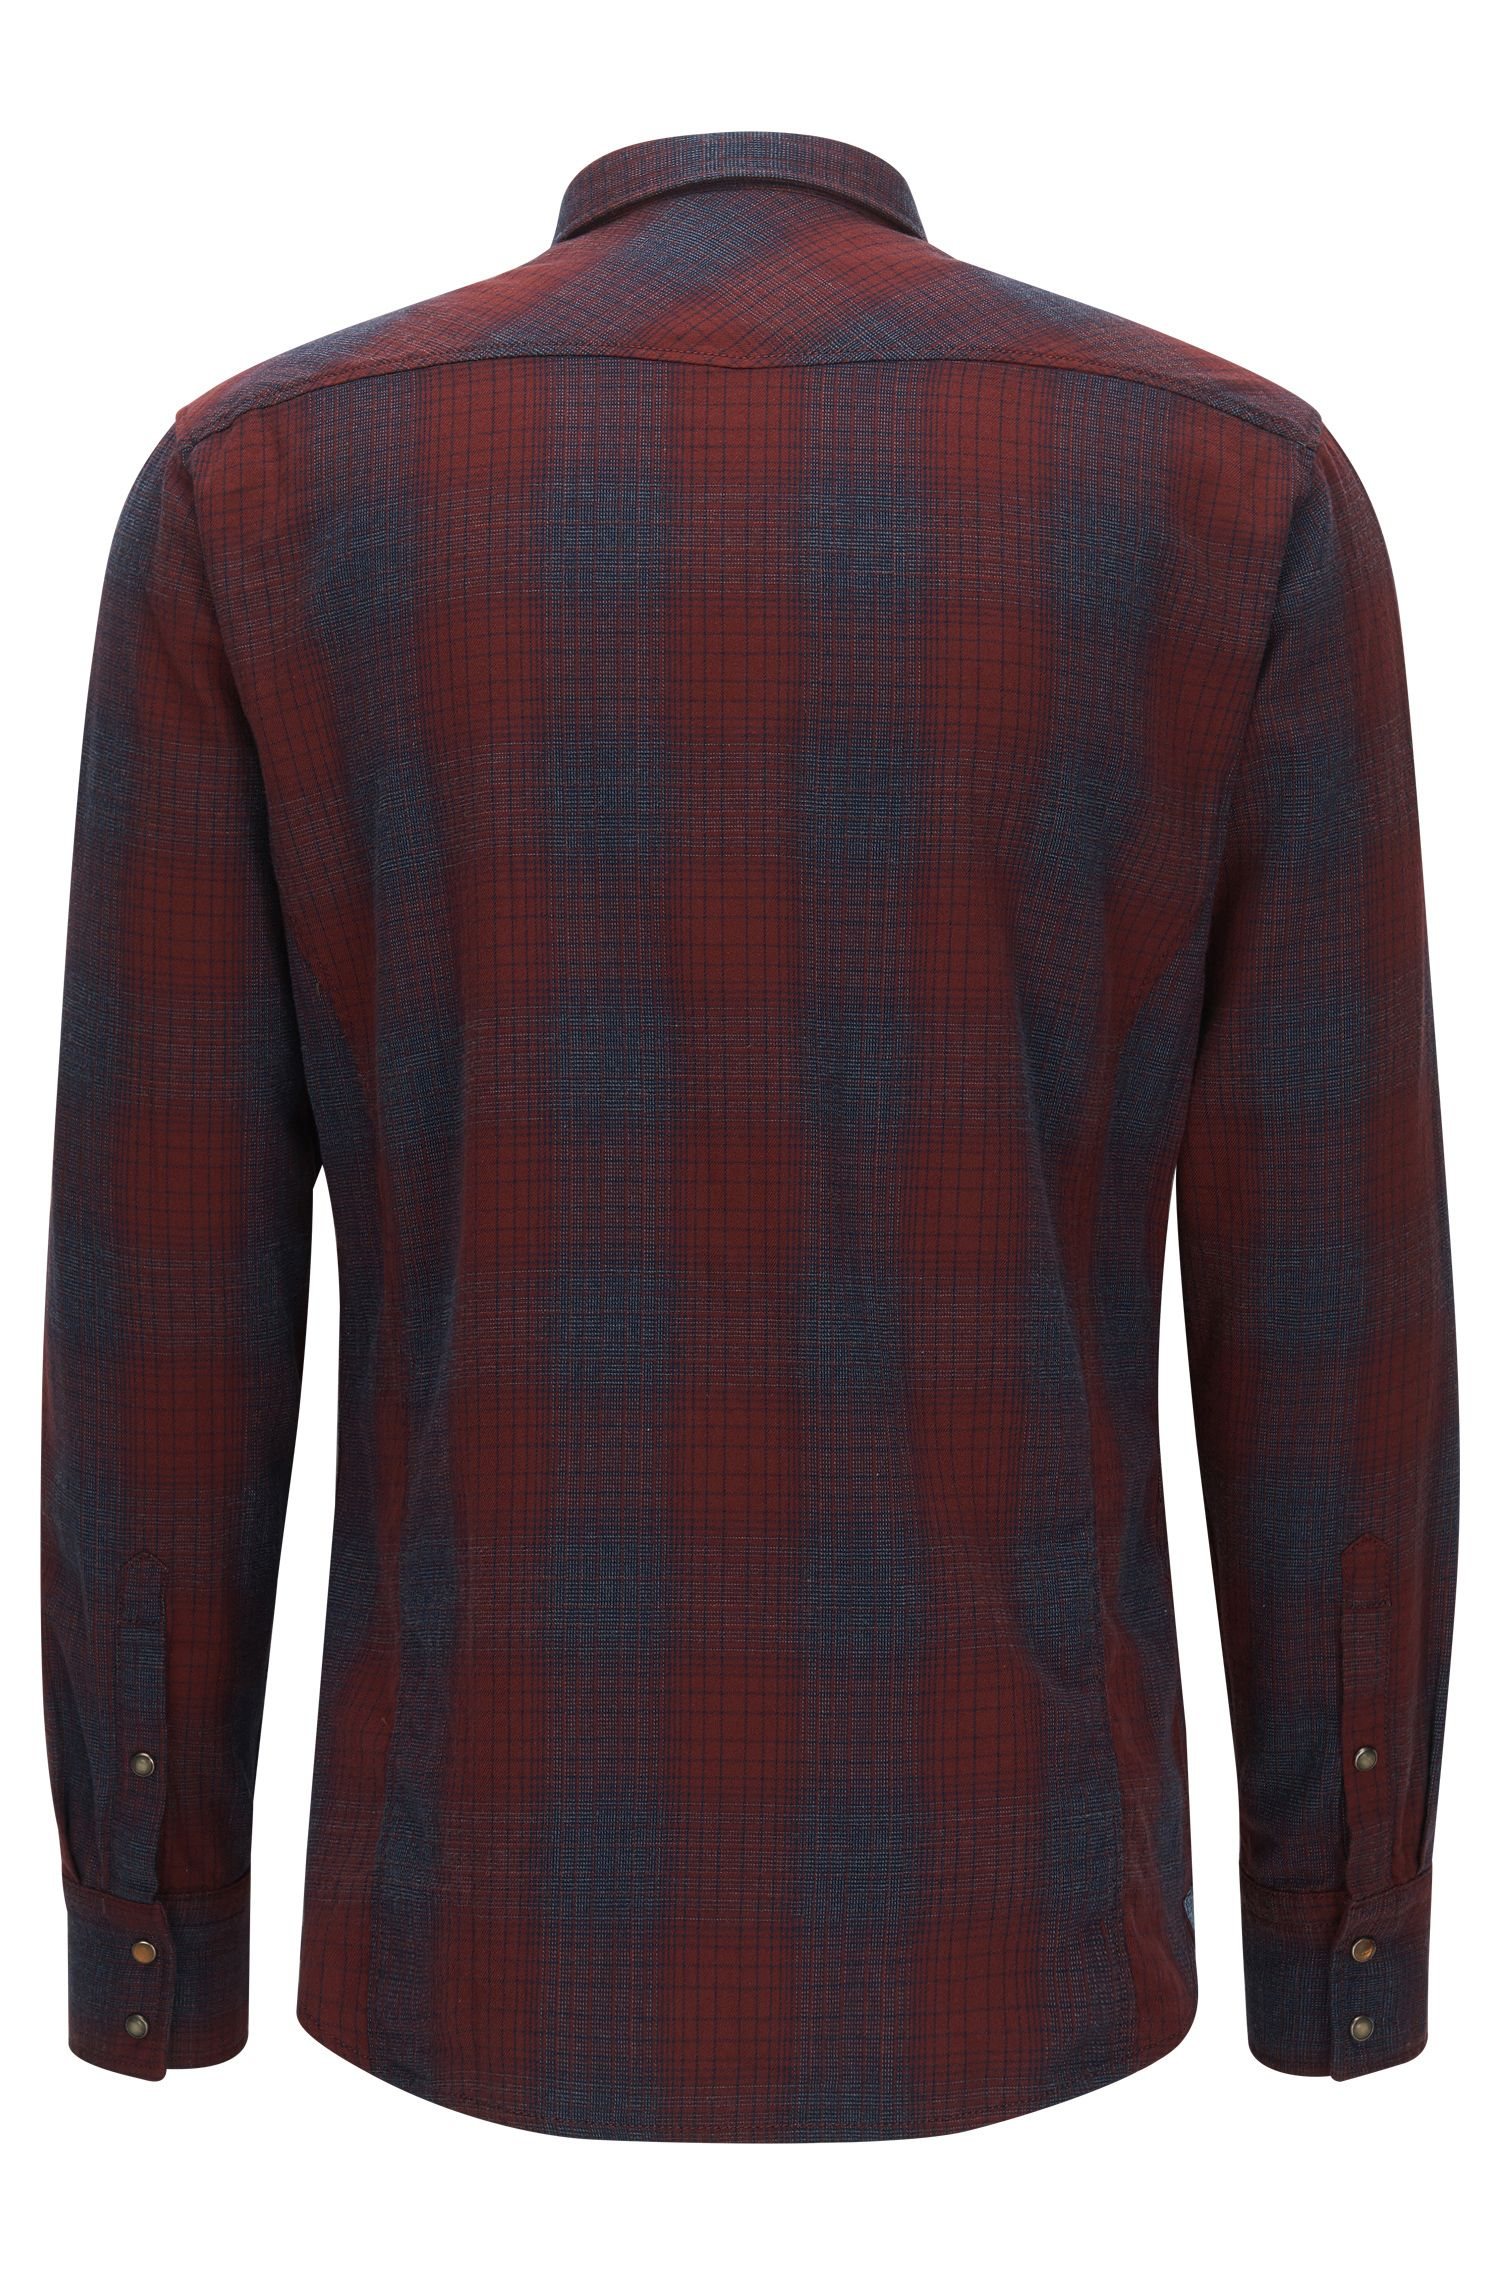 'Erodeo' | Slim Fit, Plaid Stretch Cotton Button Down Shirt